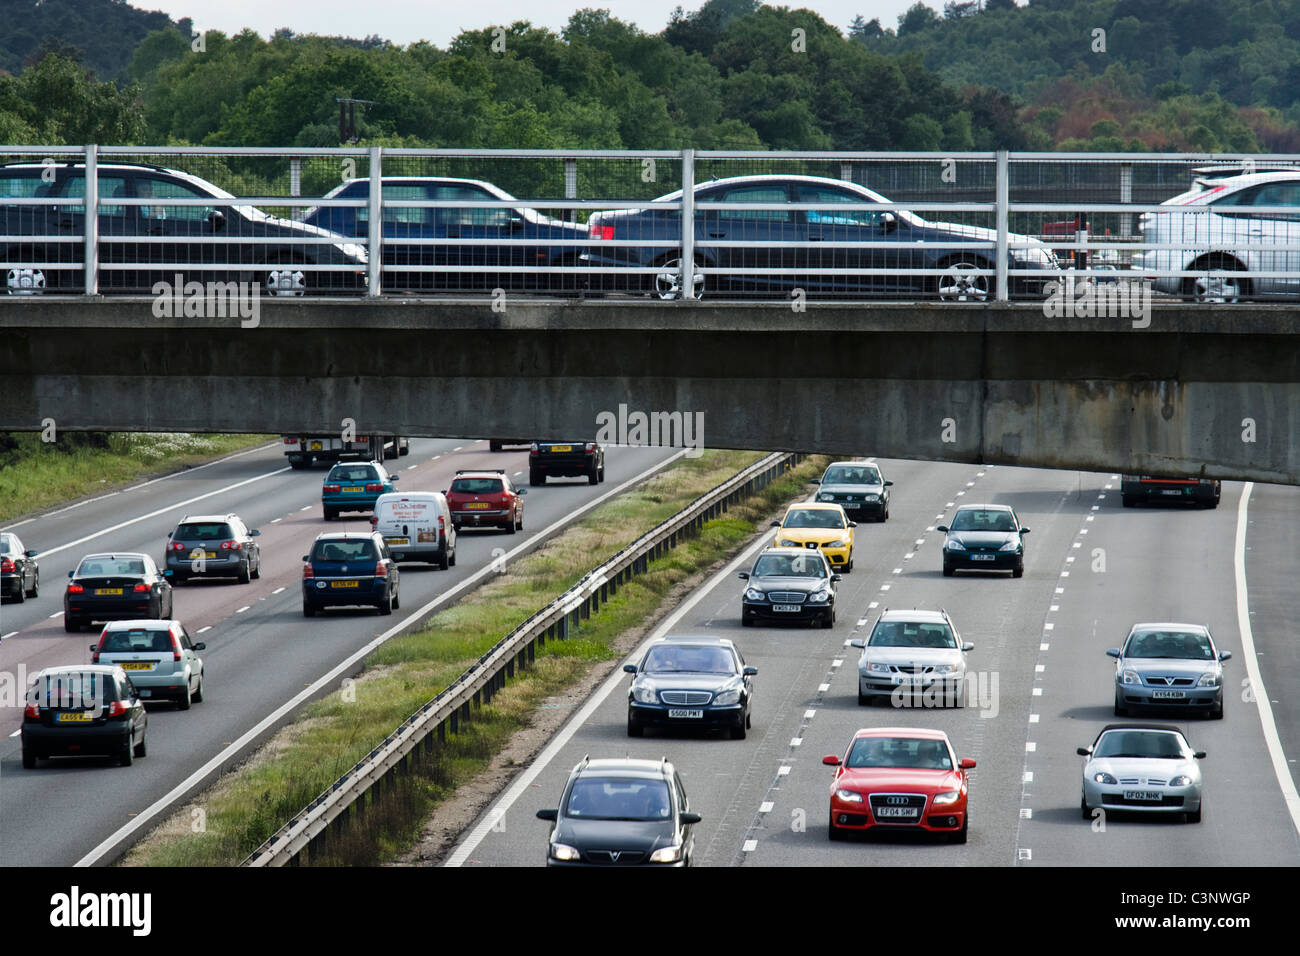 Heavy rush hour traffic on motorway. M3, Surrey. - Stock Image